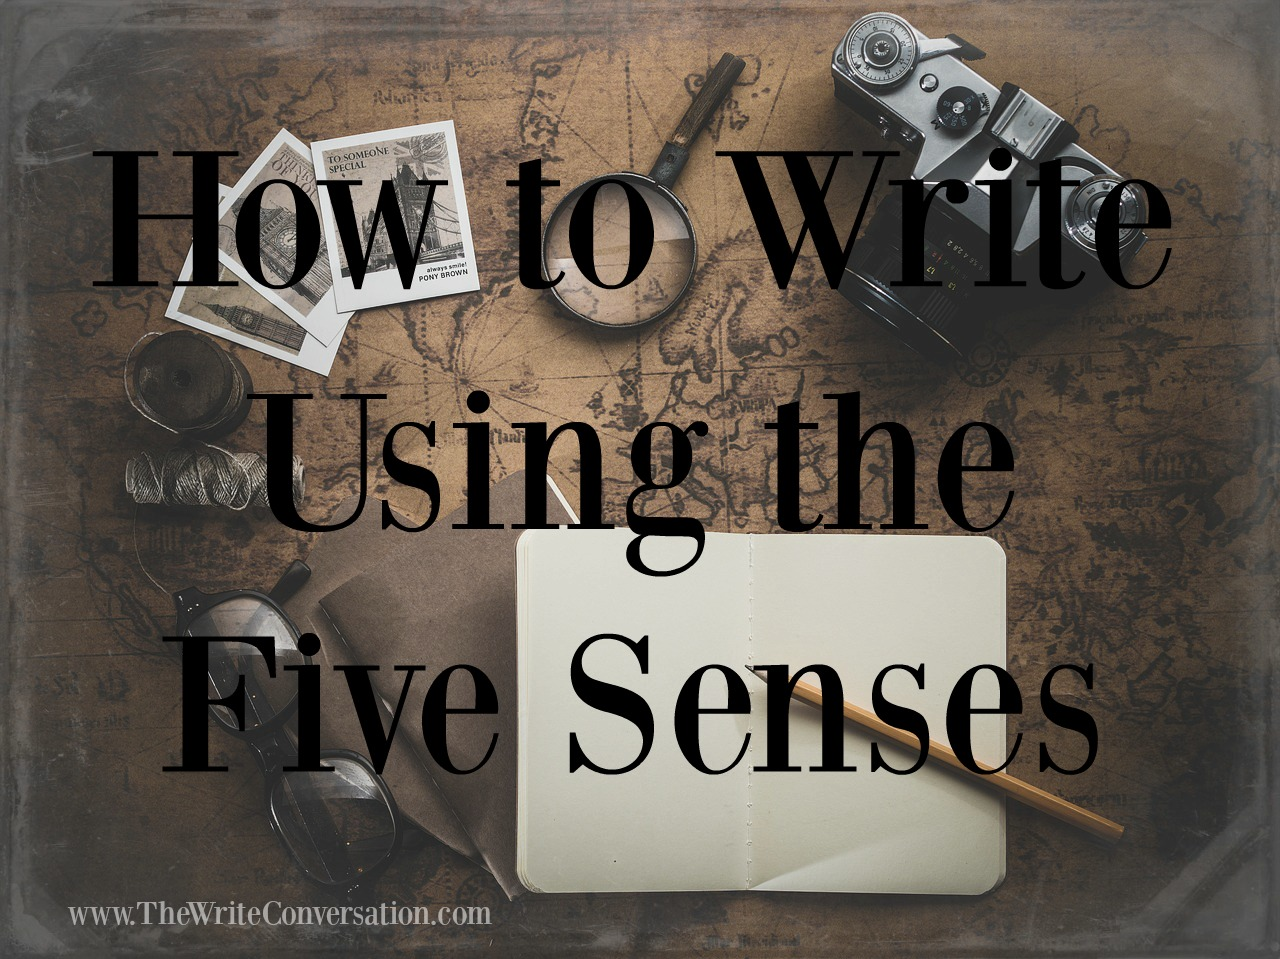 the write conversation 5 ways to write using the five senses sound great authors write using the five senses they are masters of drawing their readers deeper into the world scene or setting of a story by embracing the